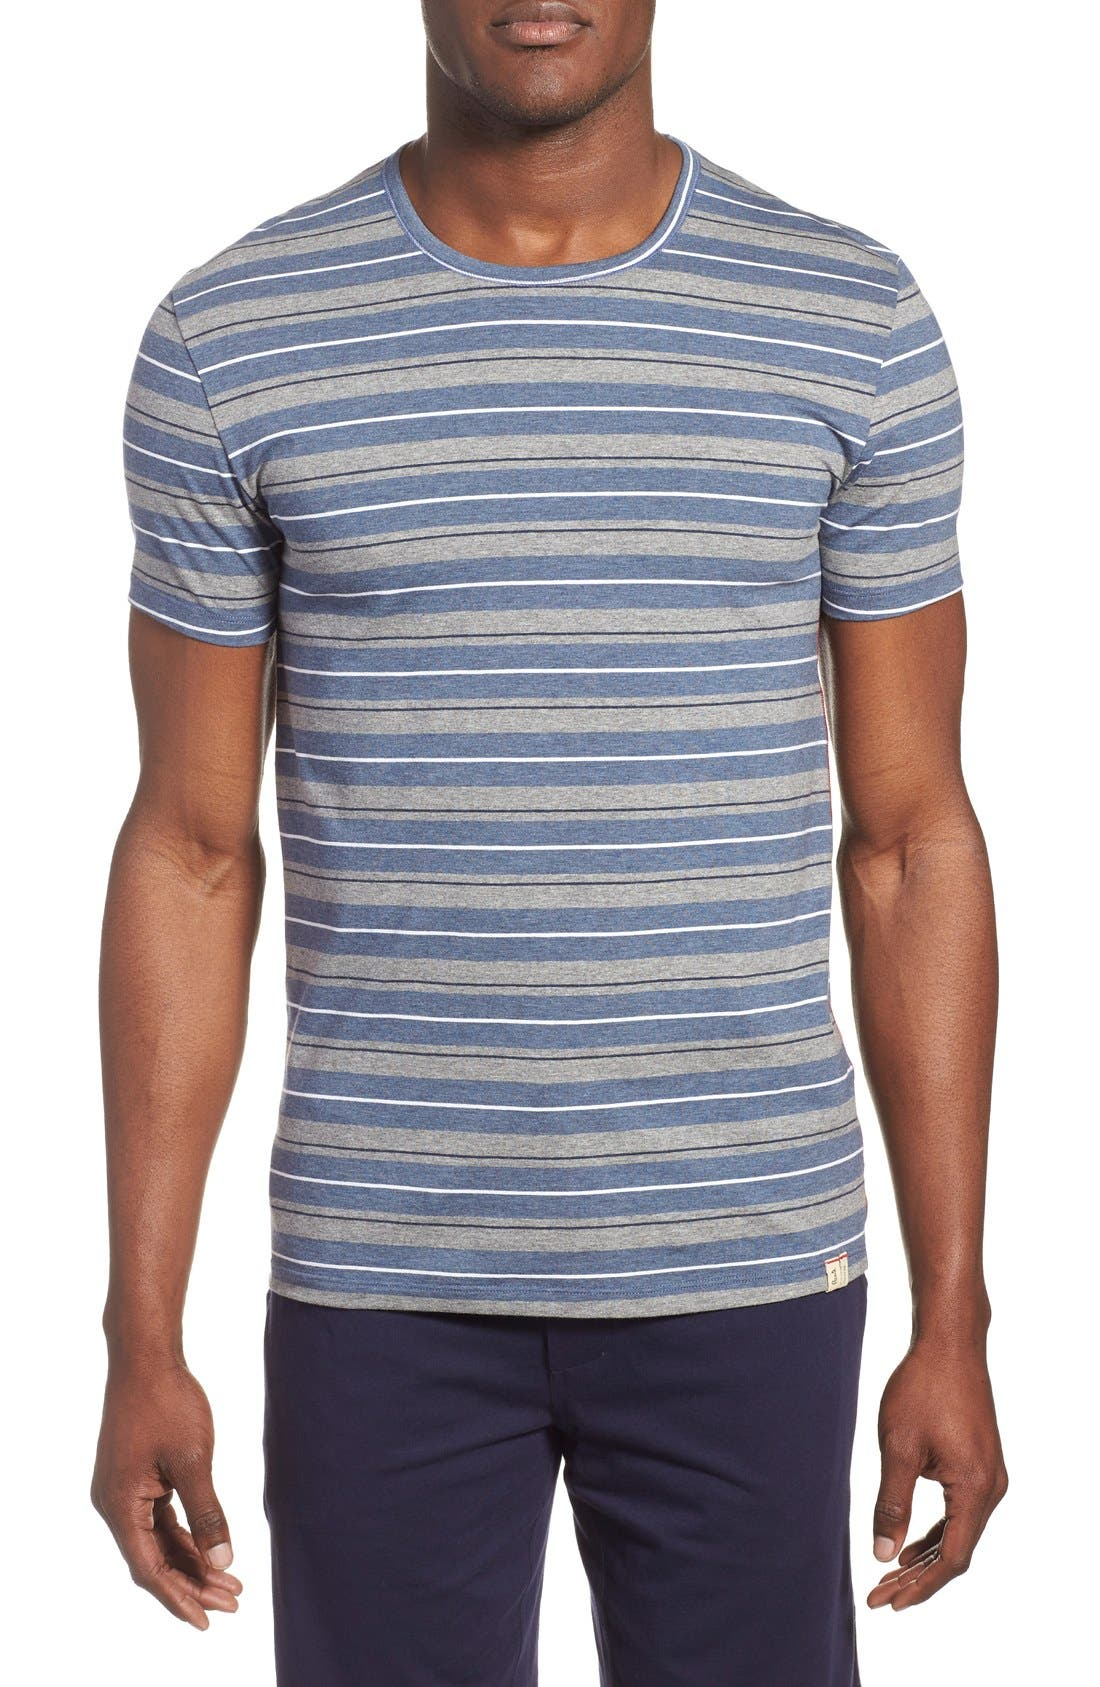 Alternate Image 1 Selected - Paul Smith Stripe Stretch Cotton T-Shirt